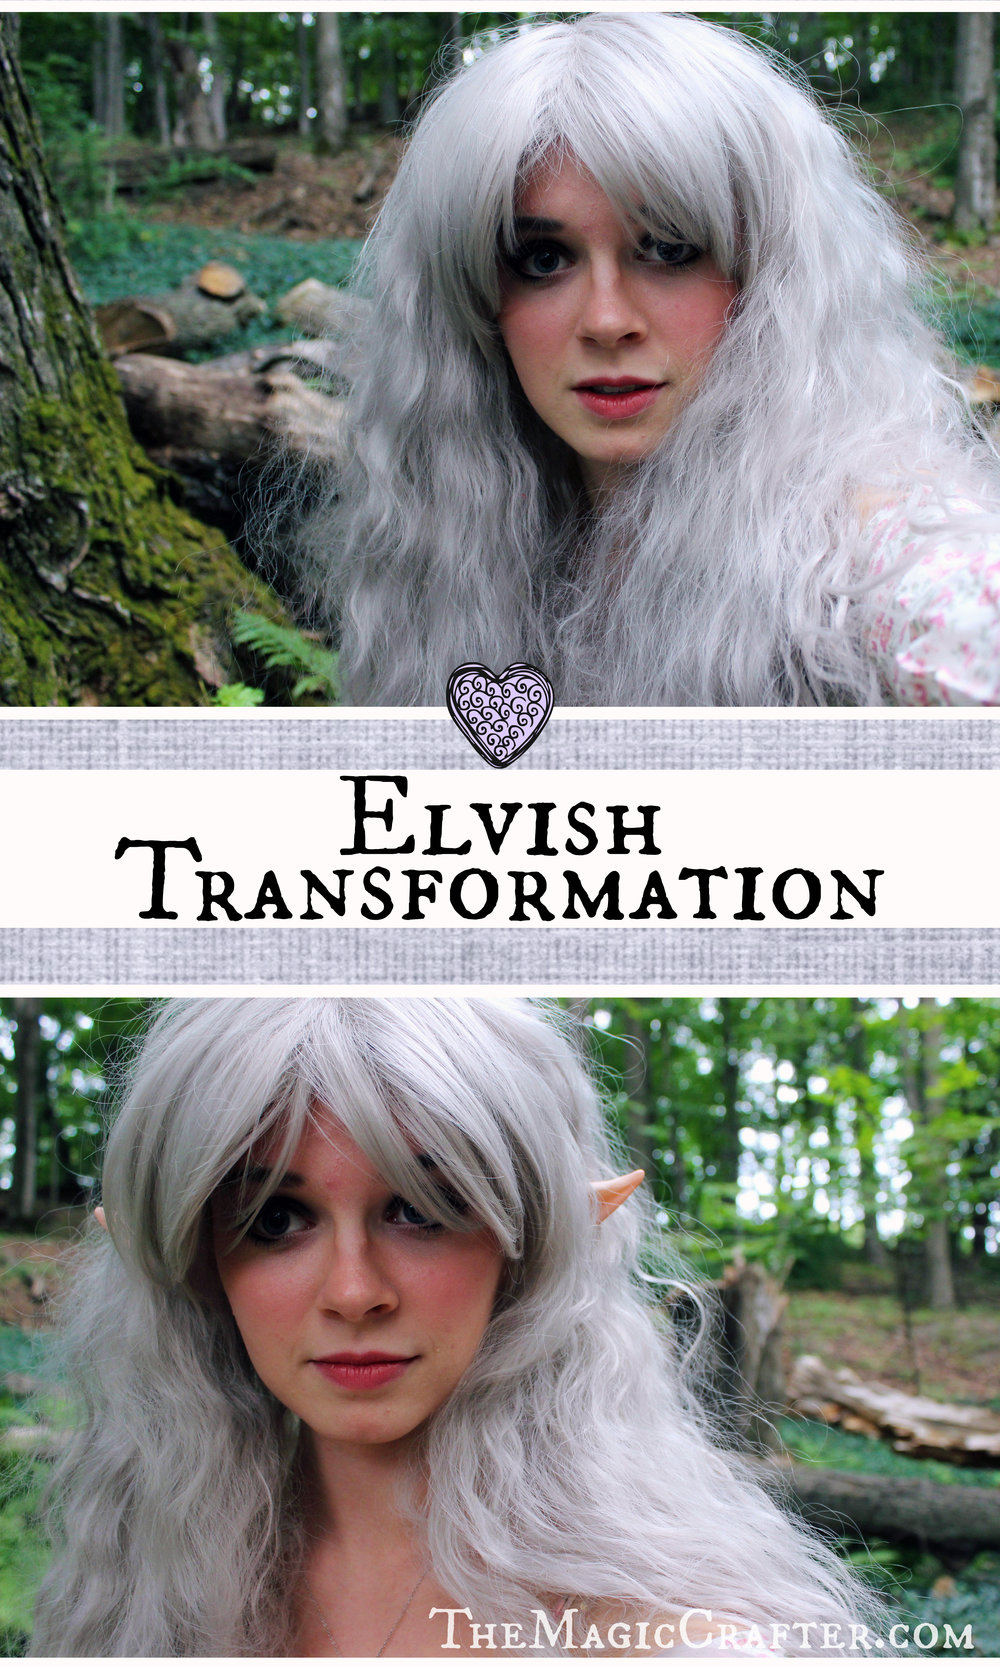 Elven Transformation: How to Become an Elf- This is a picture of Phantom, a Professional Mermaid who sometimes moonlights as a wingless fairy or an elf. The picture shown is part of her blog post, from TheMagicCrafter.com, that will tell you how she transformed into a fairytale creature.